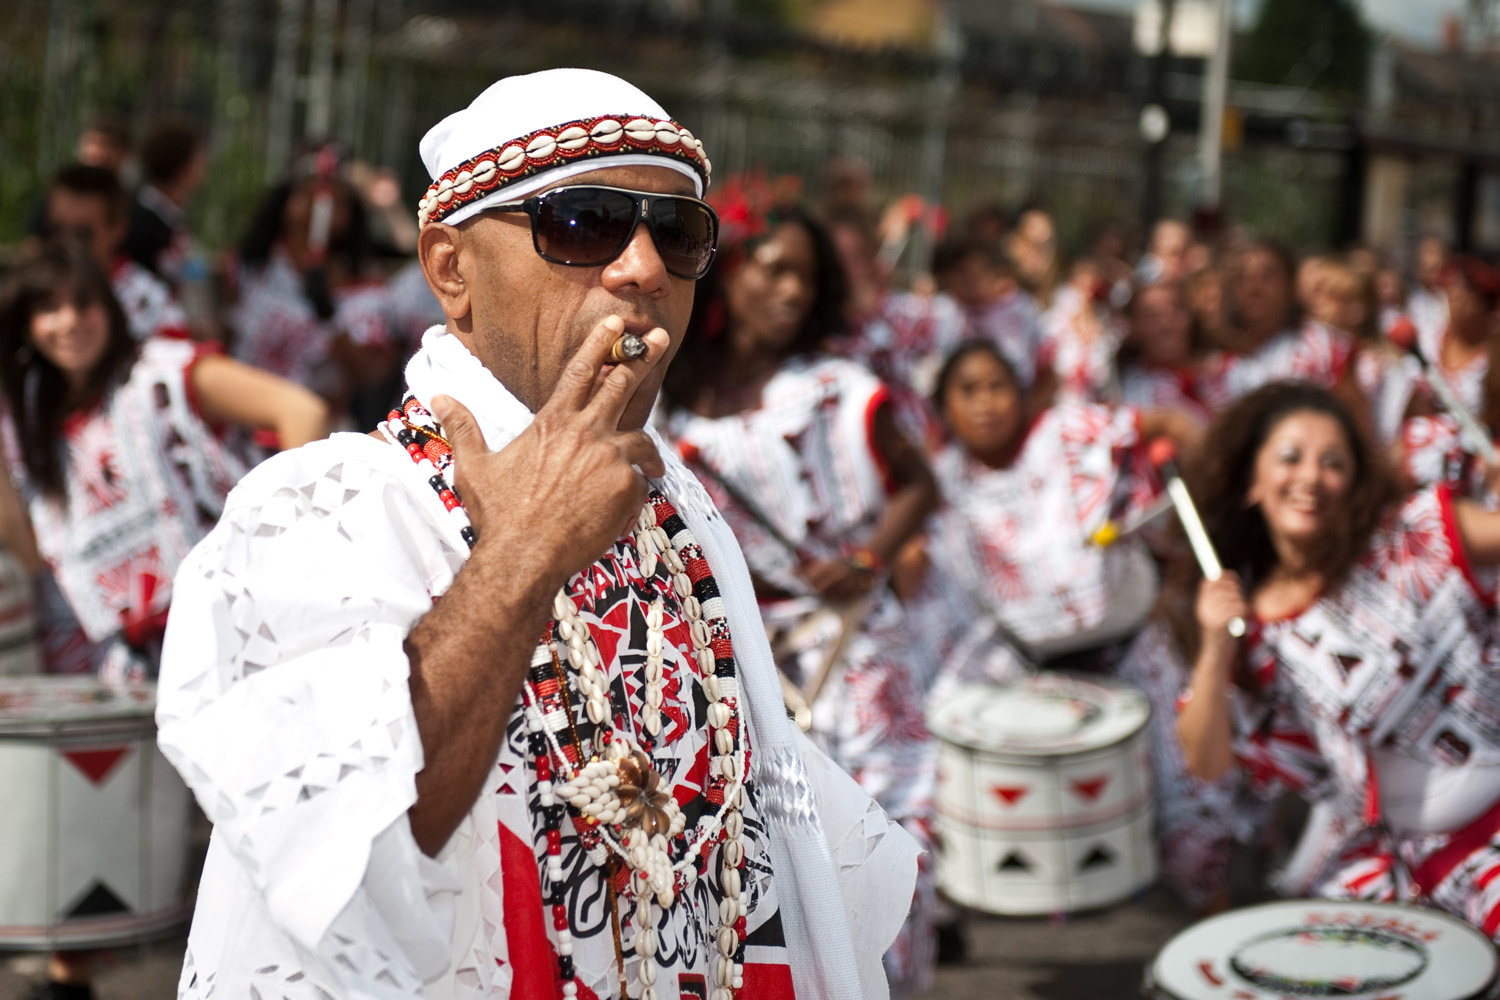 Carnival_the_drums_07